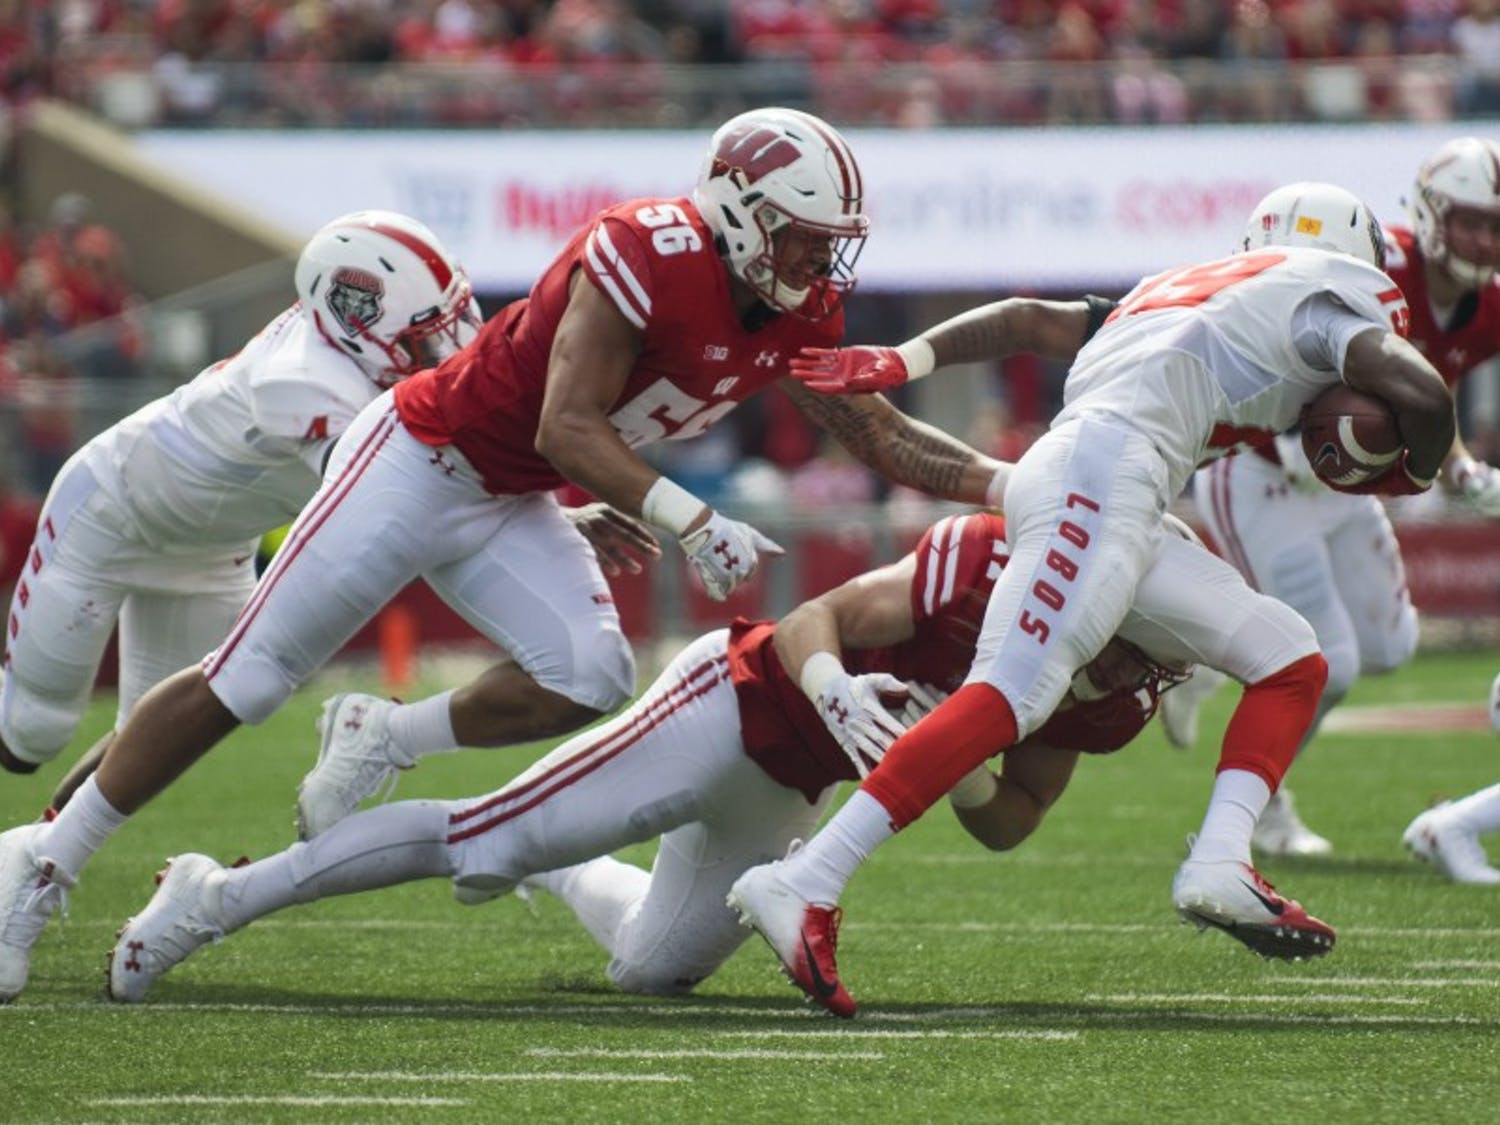 After allowing a touchdown on the opening drive, Wisconsin's defense tightened up and gave up just 45 yards on the next seven drives to give the offense a chance to take over.